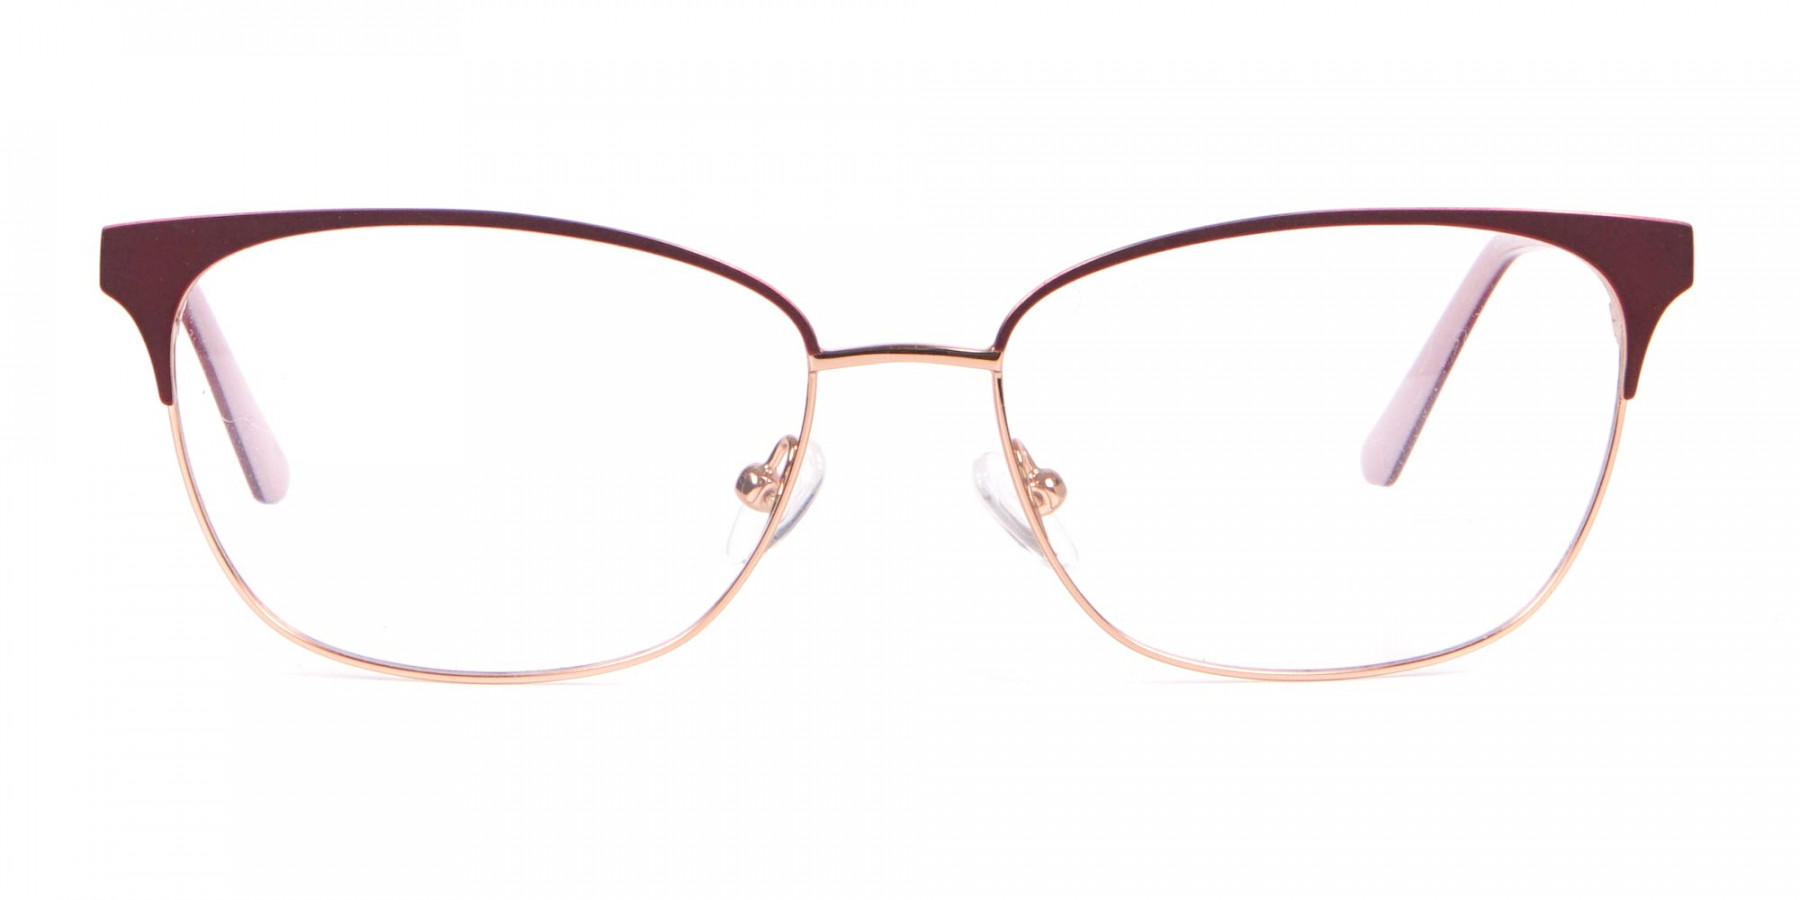 Calvin Klein CK18108 Women Rectangular Metal Glasses Red-1